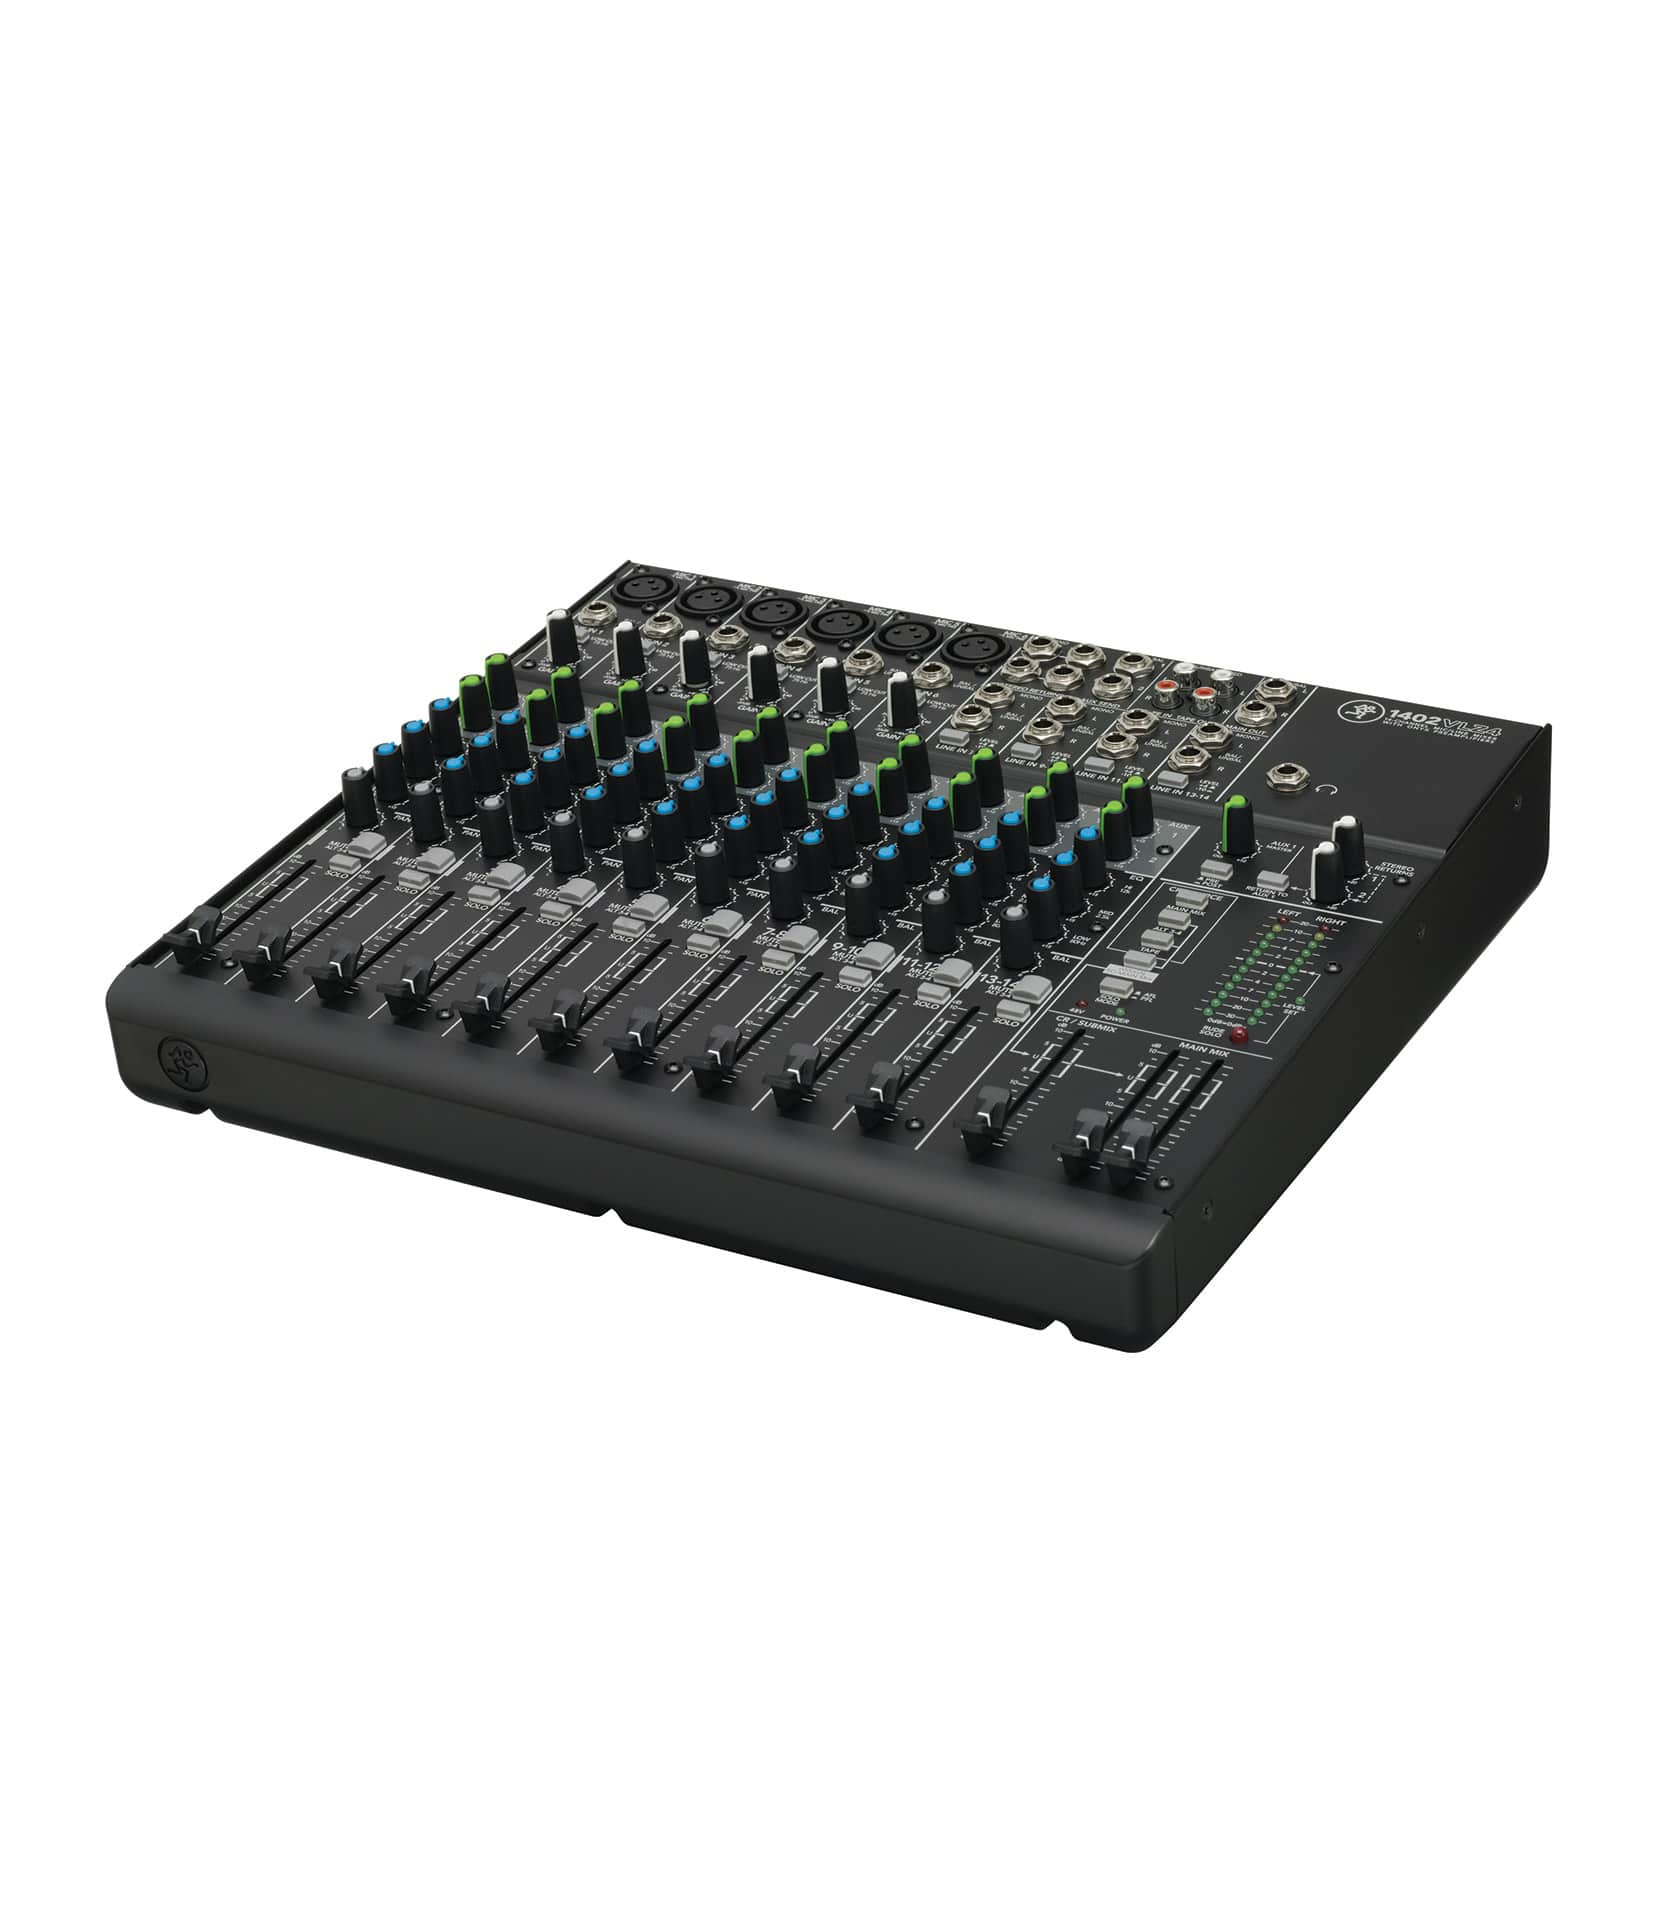 Mackie - 1402VLZ4 14 channel Compact Mixer - info@melodyhousemi.com